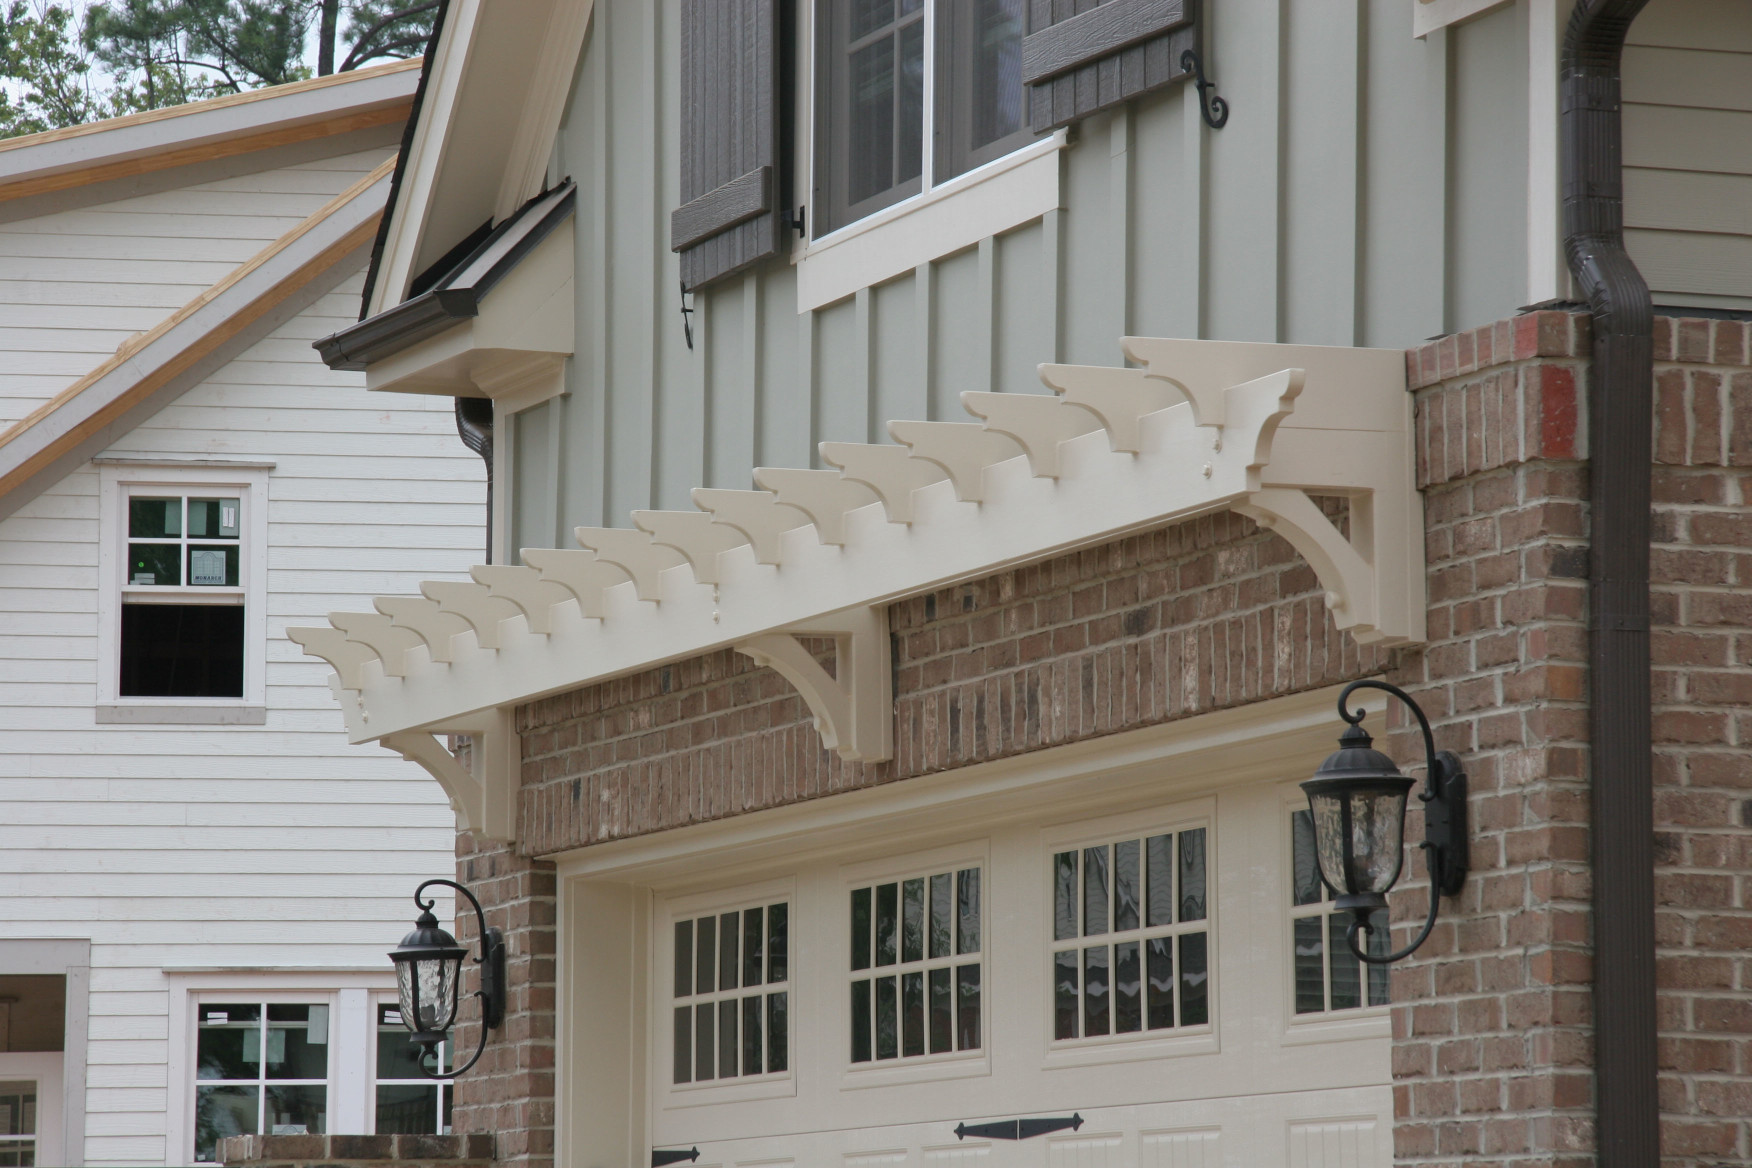 This wood trellis with stain adds curb appeal to the exterior of this home.